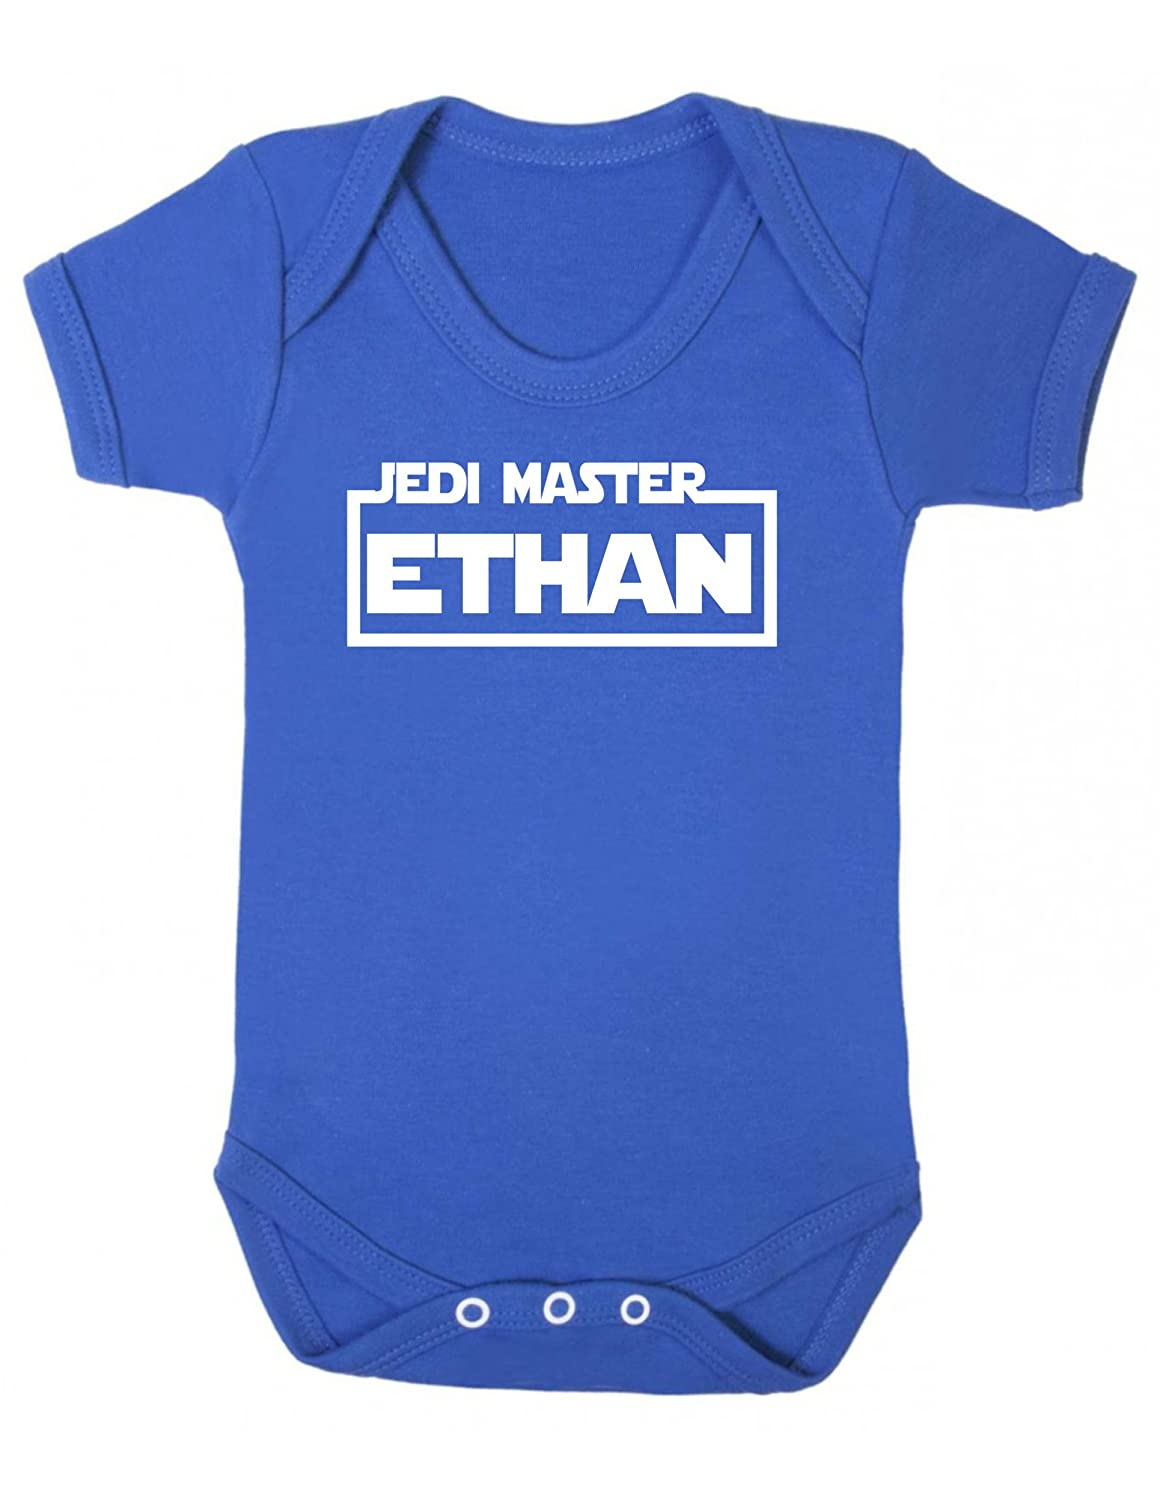 Jedi in Training Star Wars Inspired Baby Vest Hat and Bib Set Baby gifts